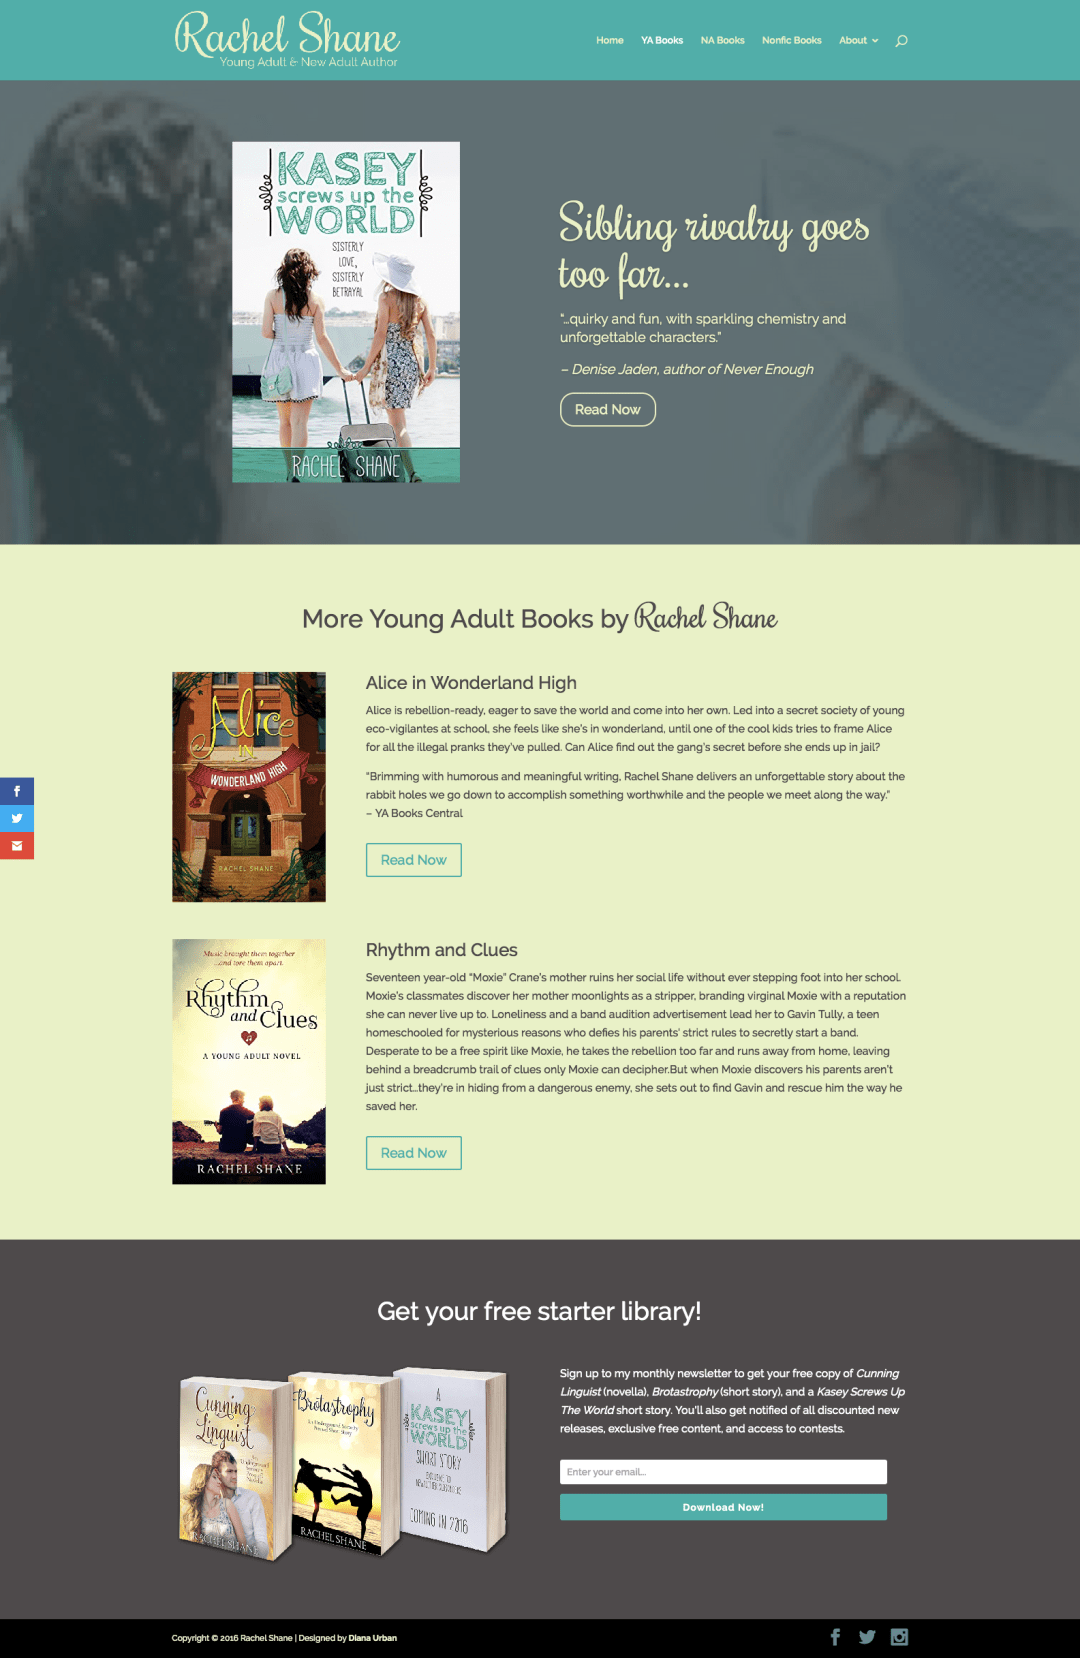 Rachel Shane's Young Adult Books Page